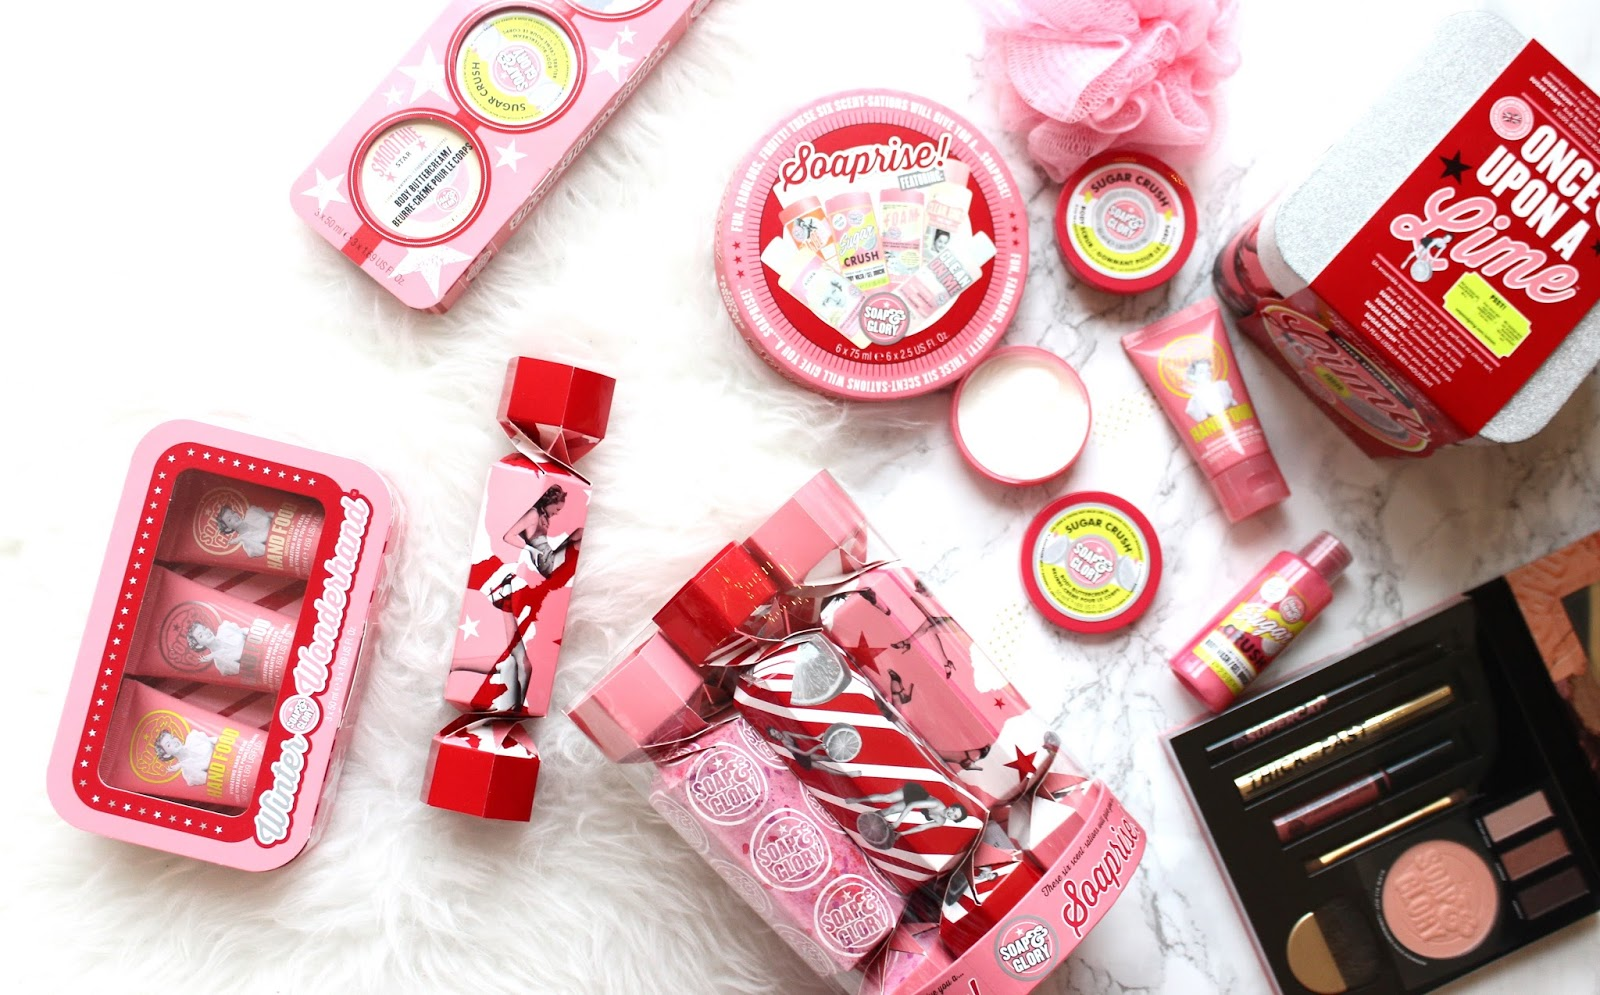 Soap & Glory Christmas Gifts